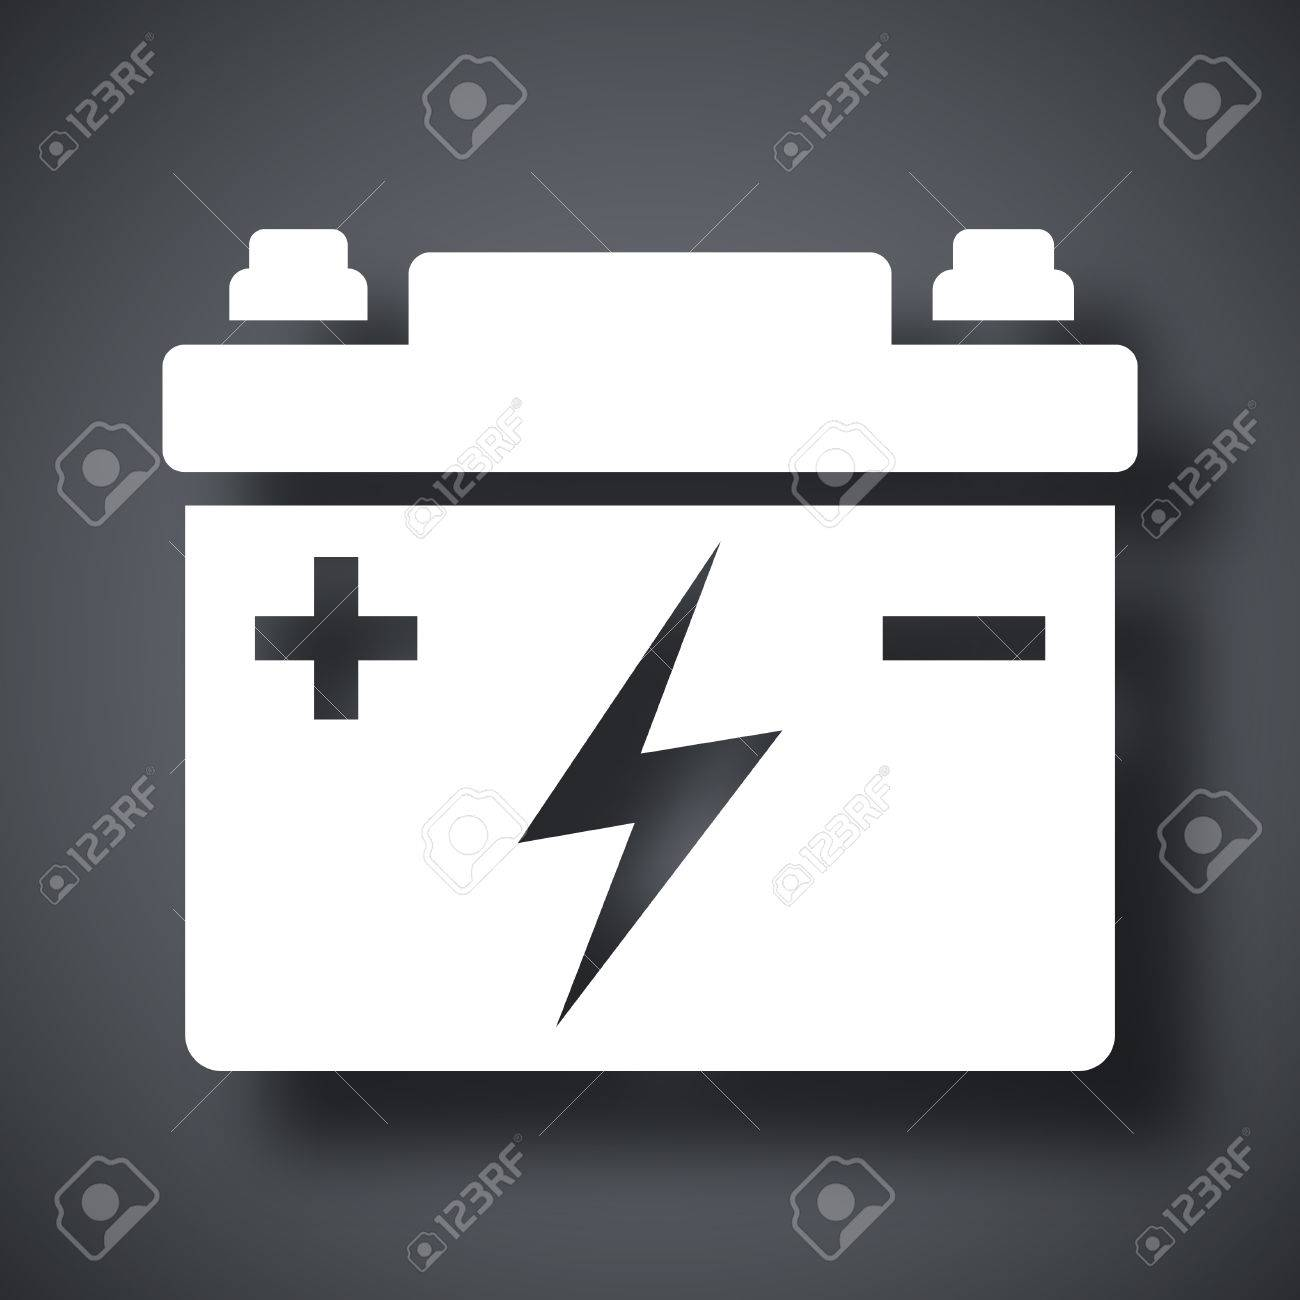 car battery vector icon royalty free cliparts vectors and stock illustration image 42964996 123rf com